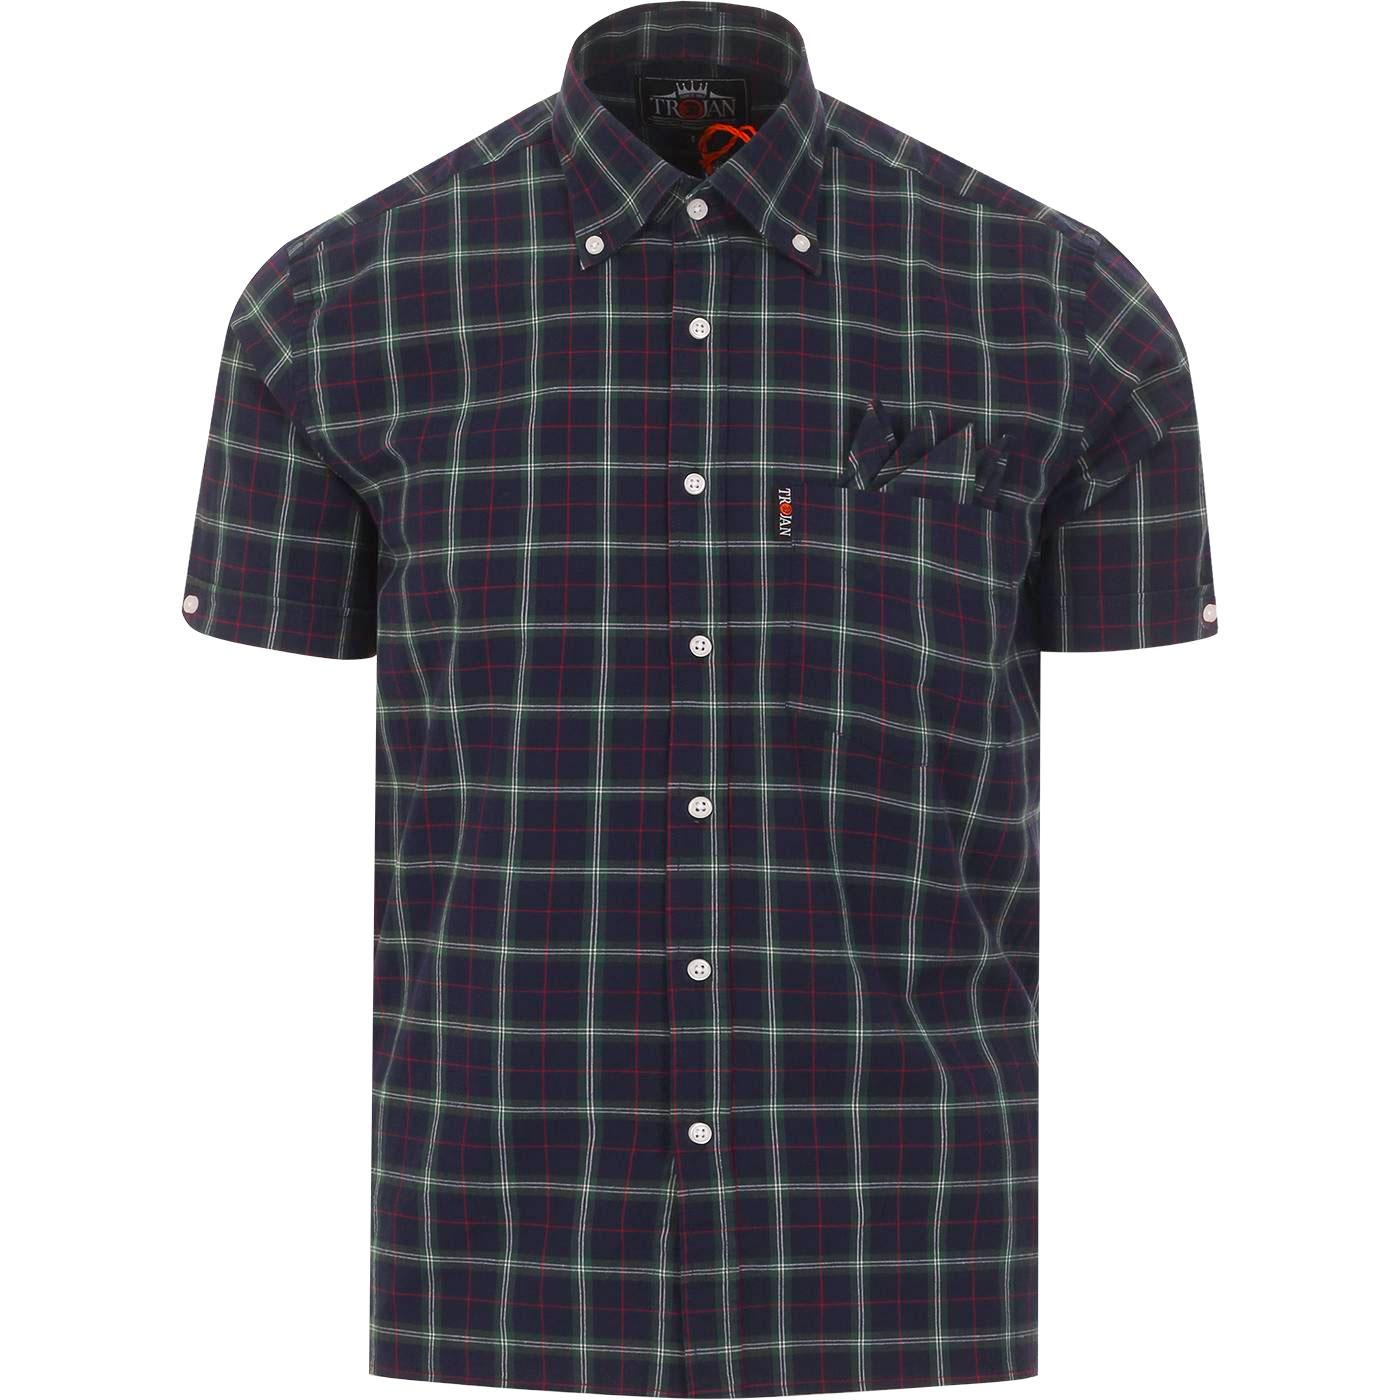 TROJAN RECORDS Retro Mod Tartan Check Shirt (Navy)